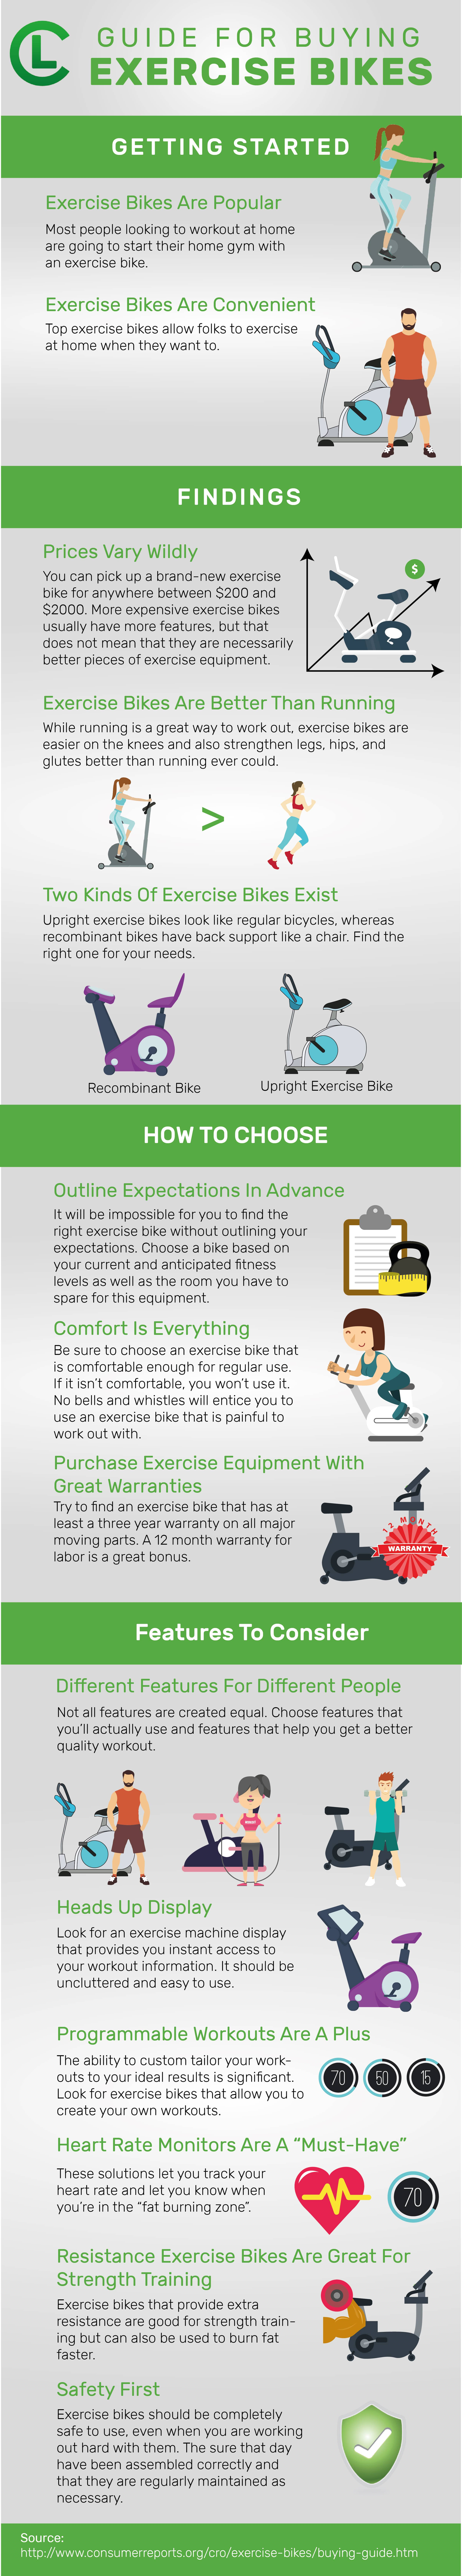 guide for buying exercise bikes infographic